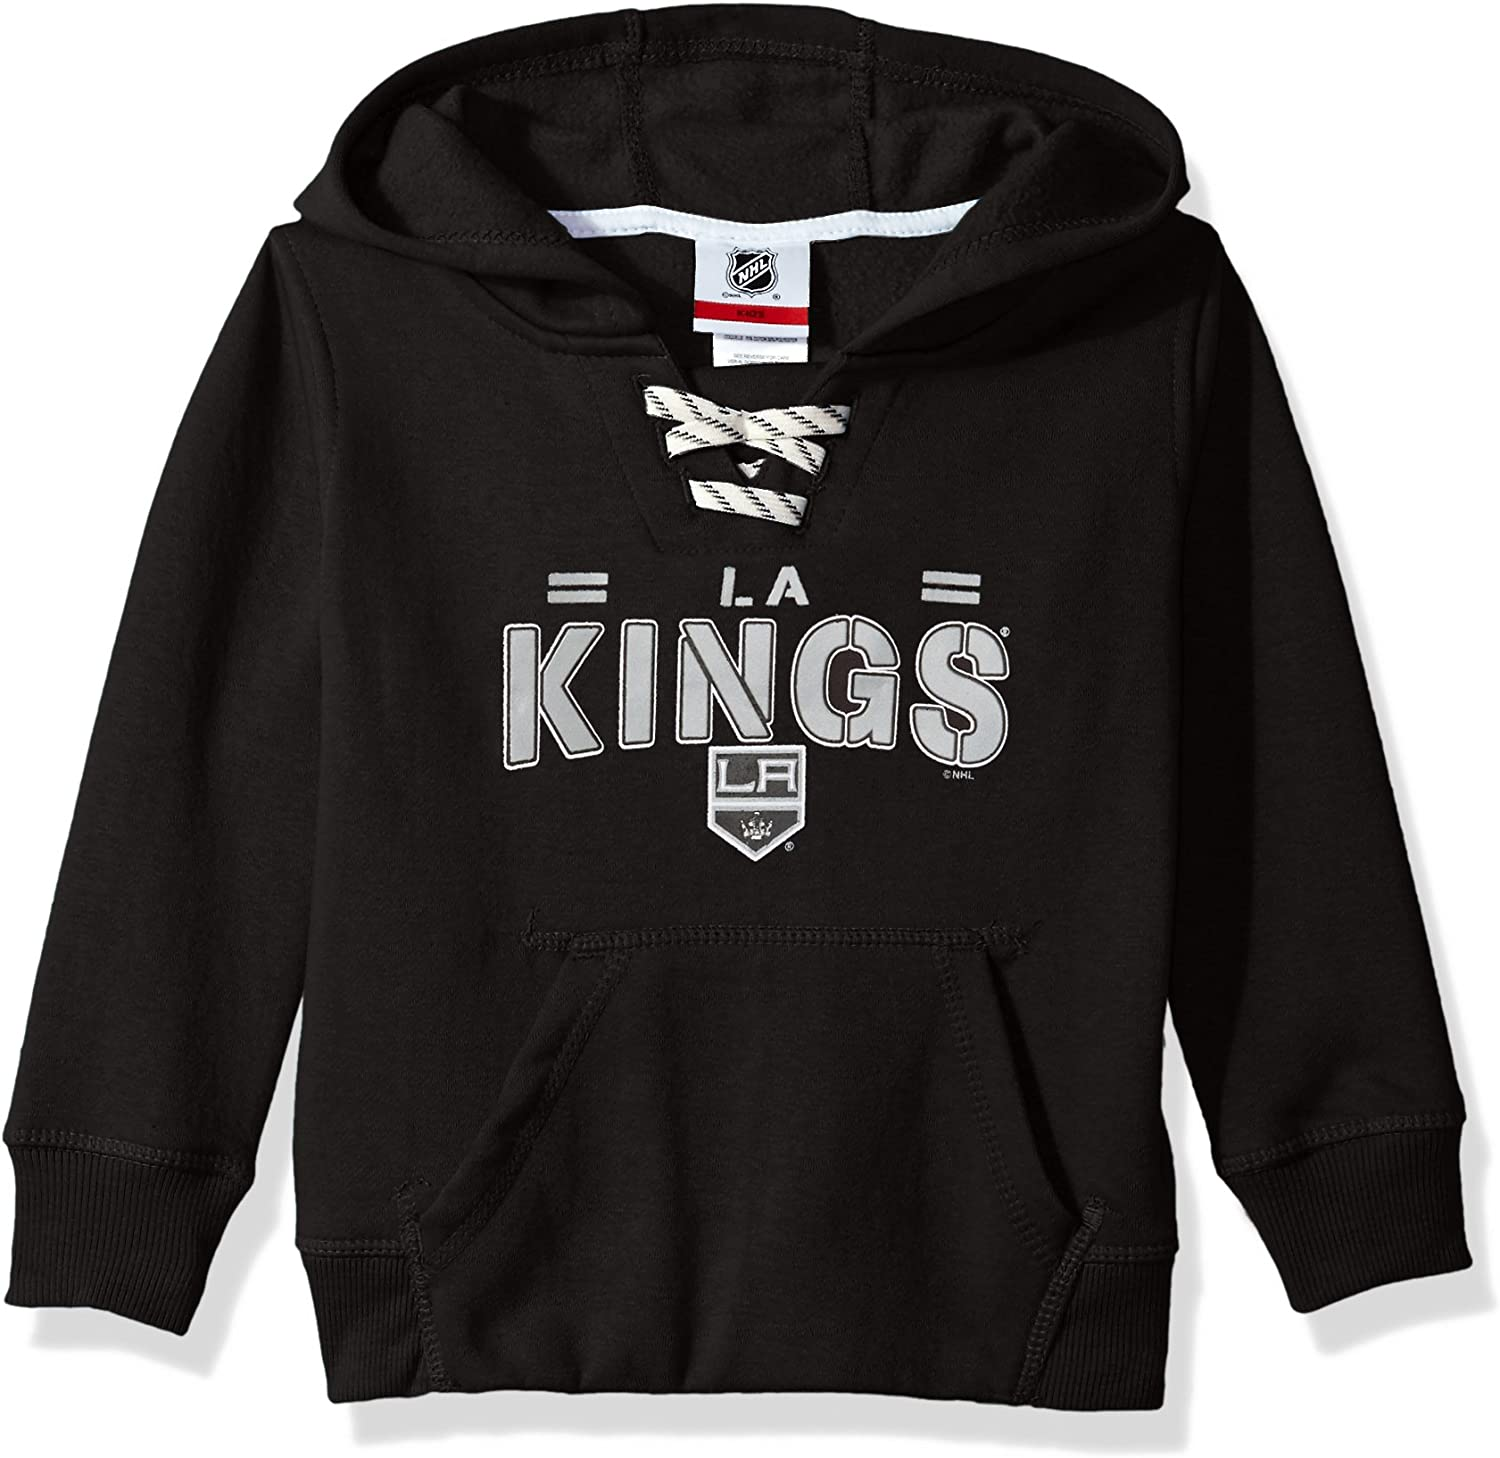 14-16 Black Large NHL Los Angeles Kings Youth BoysStandard Issue Fleece Hoodie